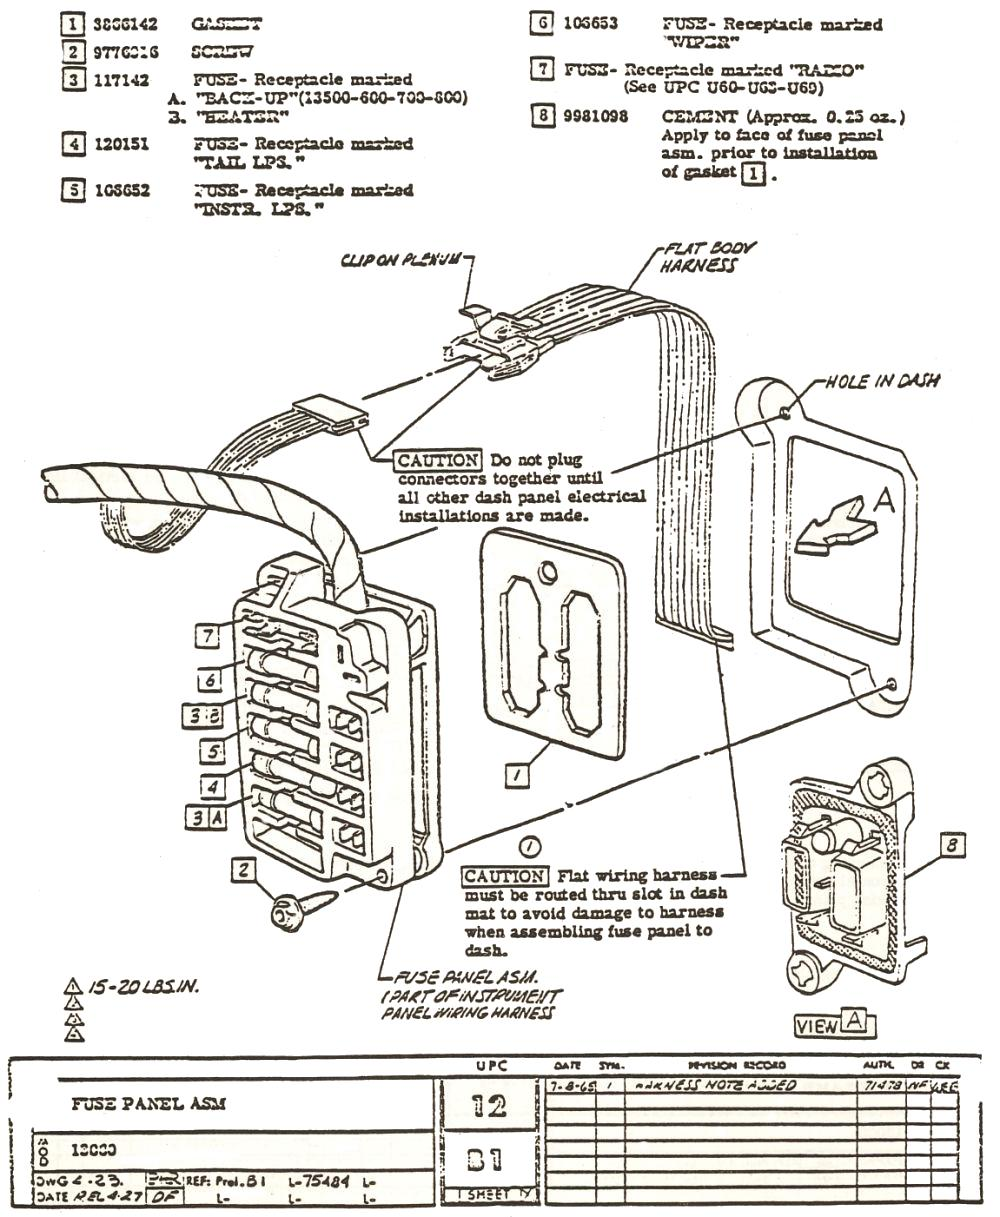 medium resolution of 1966 chevy fuse box my wiring diagram67 fuse panel wiring diagram chevy nova wiring diagram show